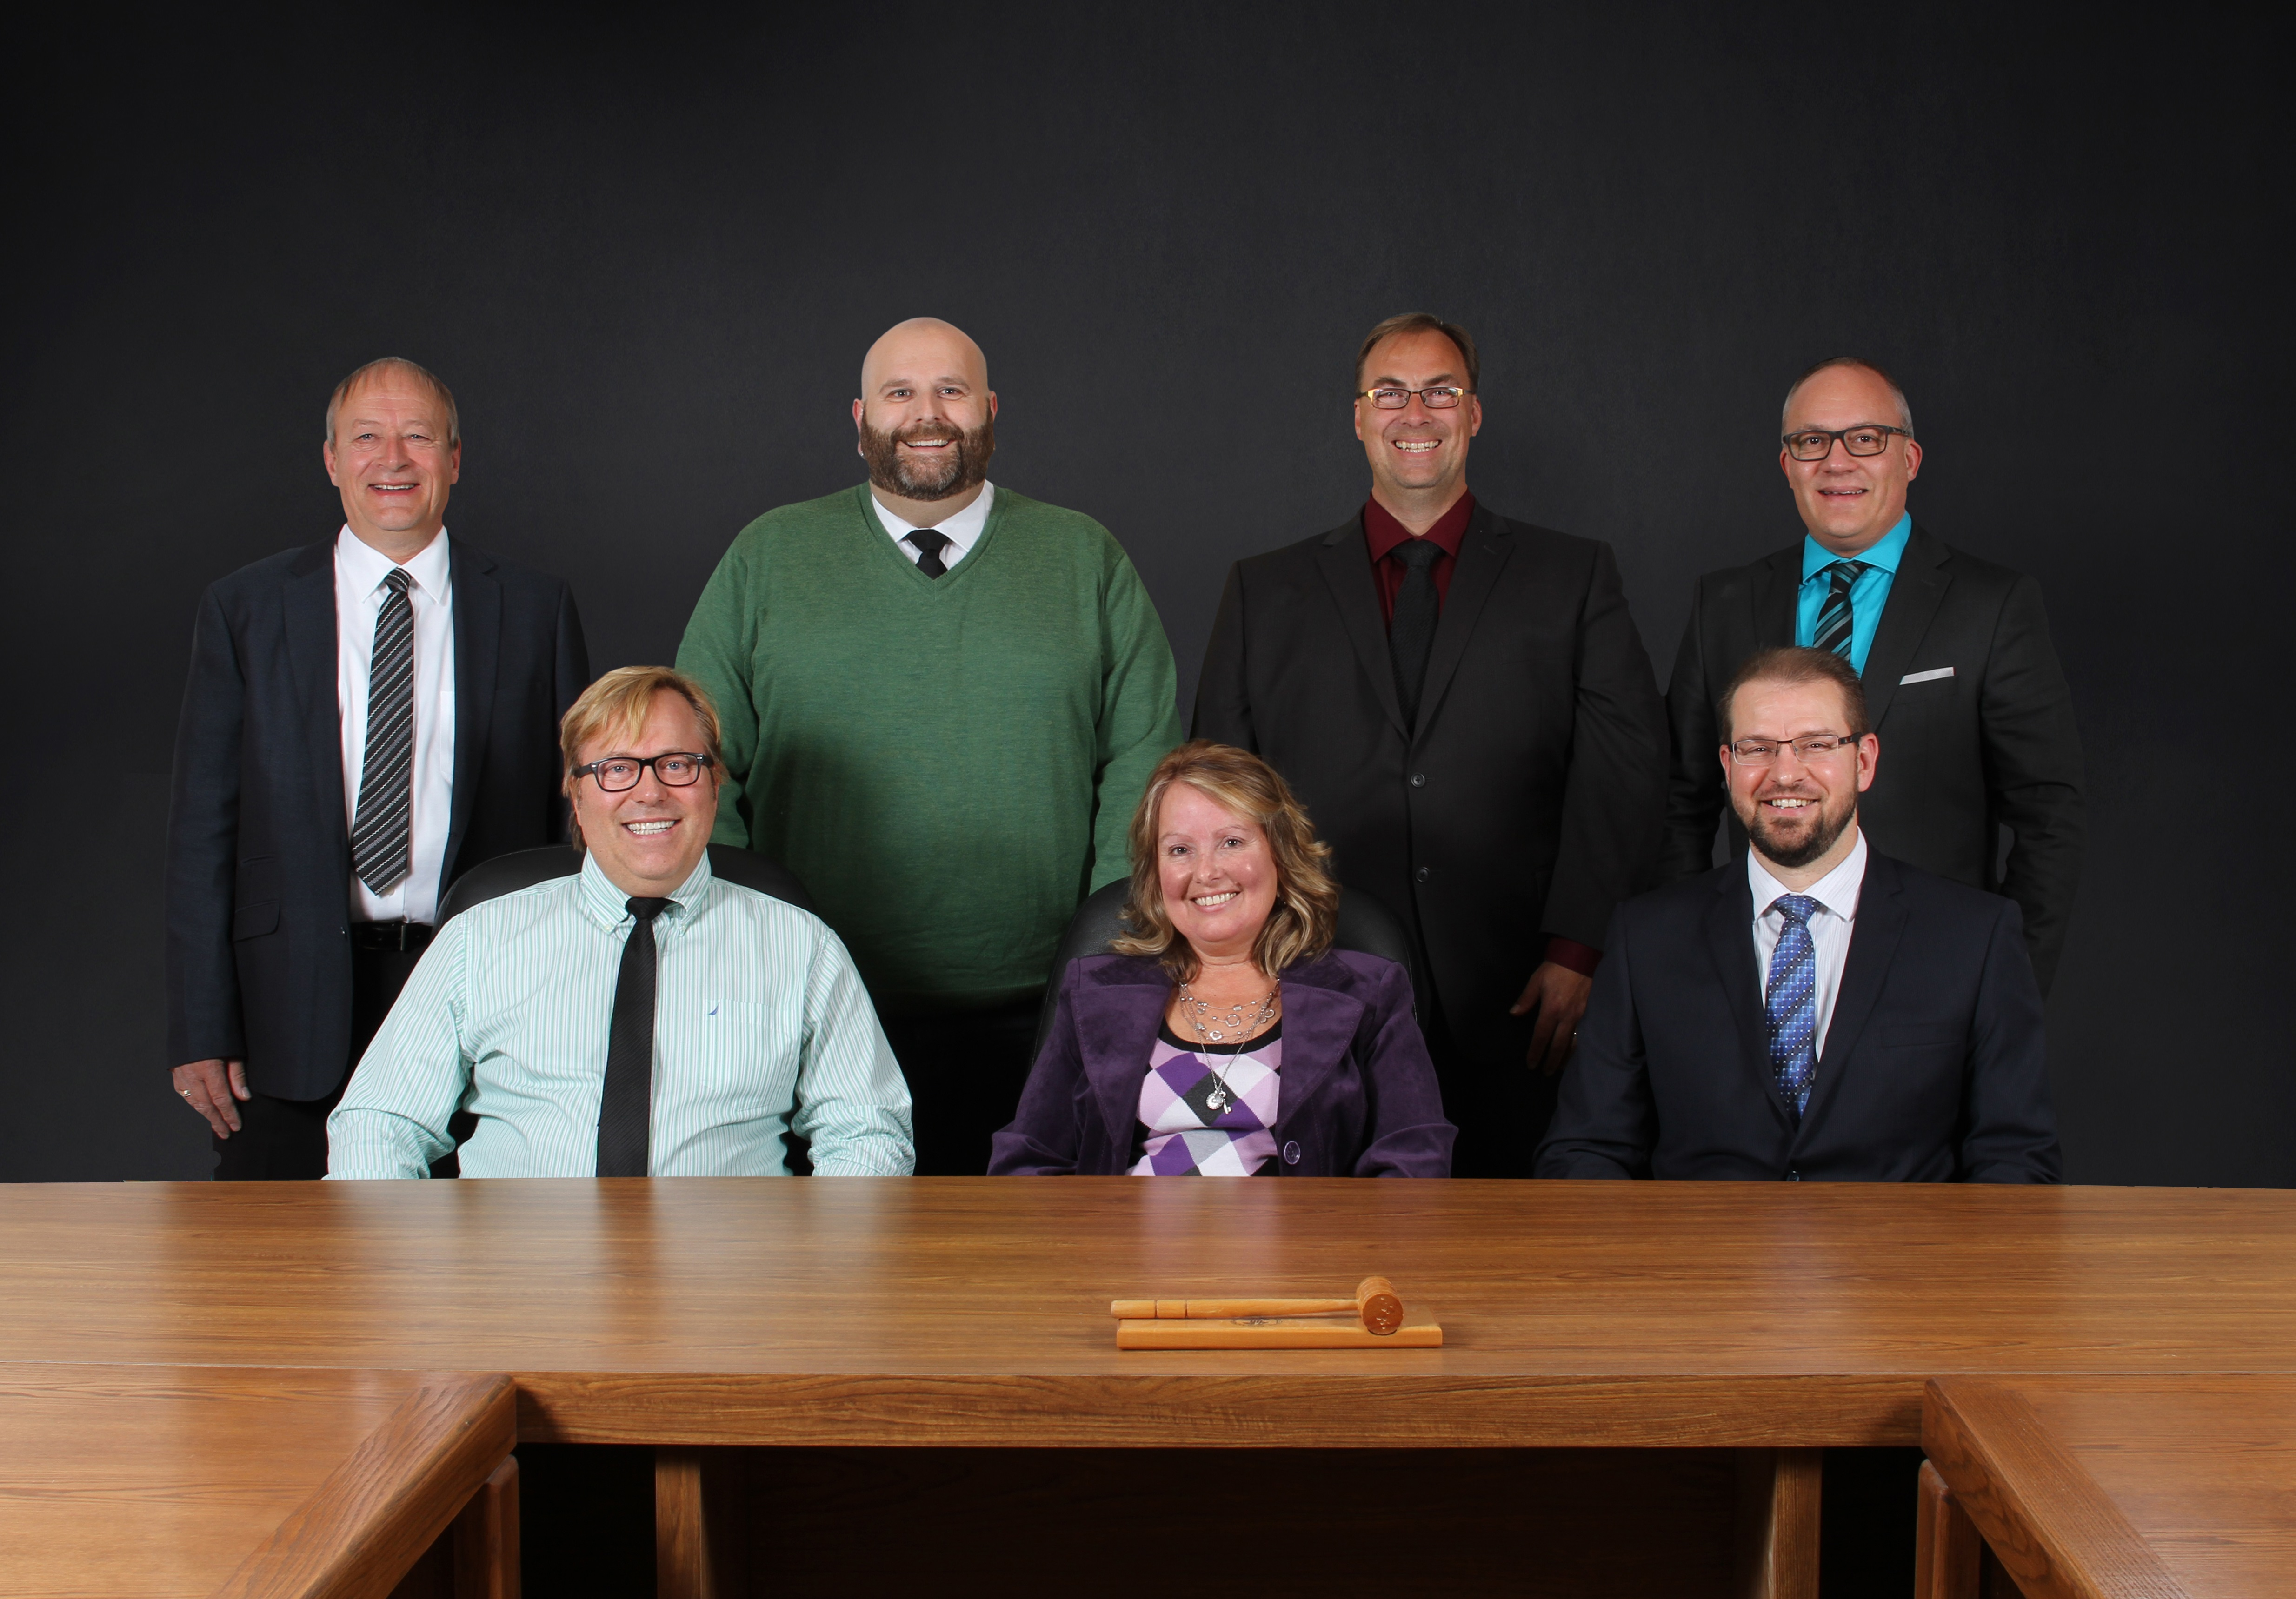 2015 council pic 2 new.jpg